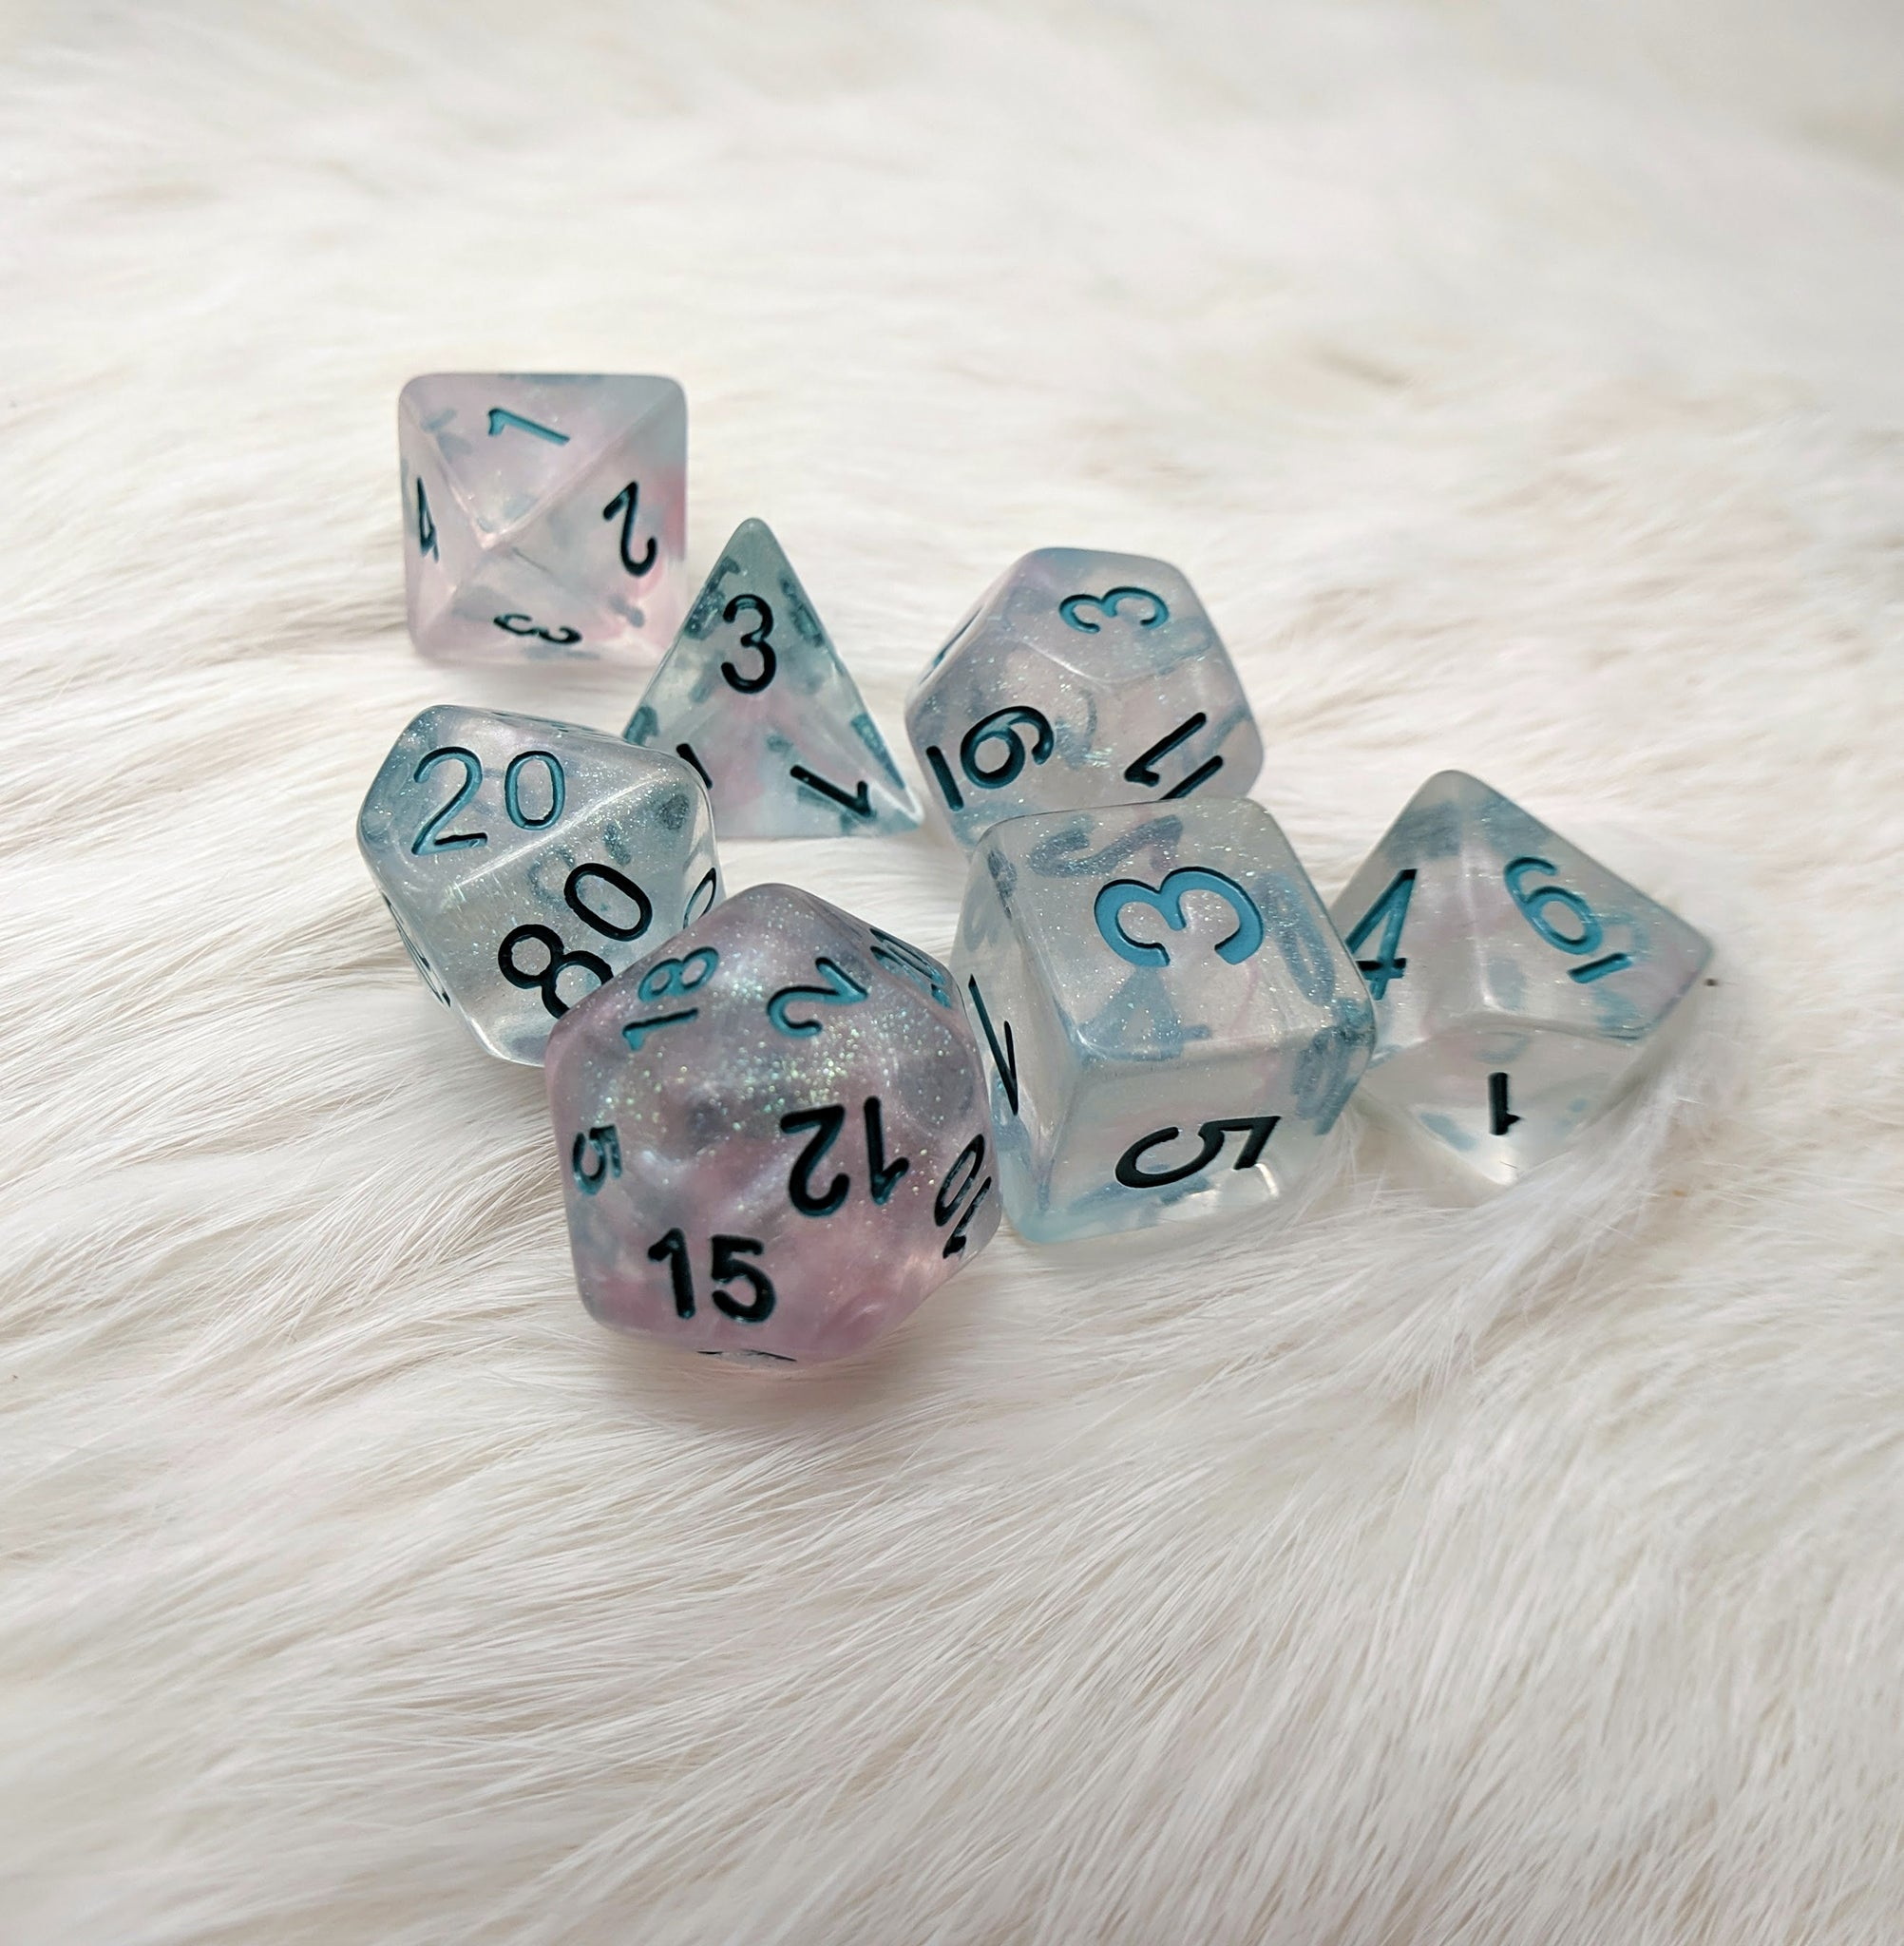 Winter Walker DnD Dice Set, Micro glitter shimmering dice